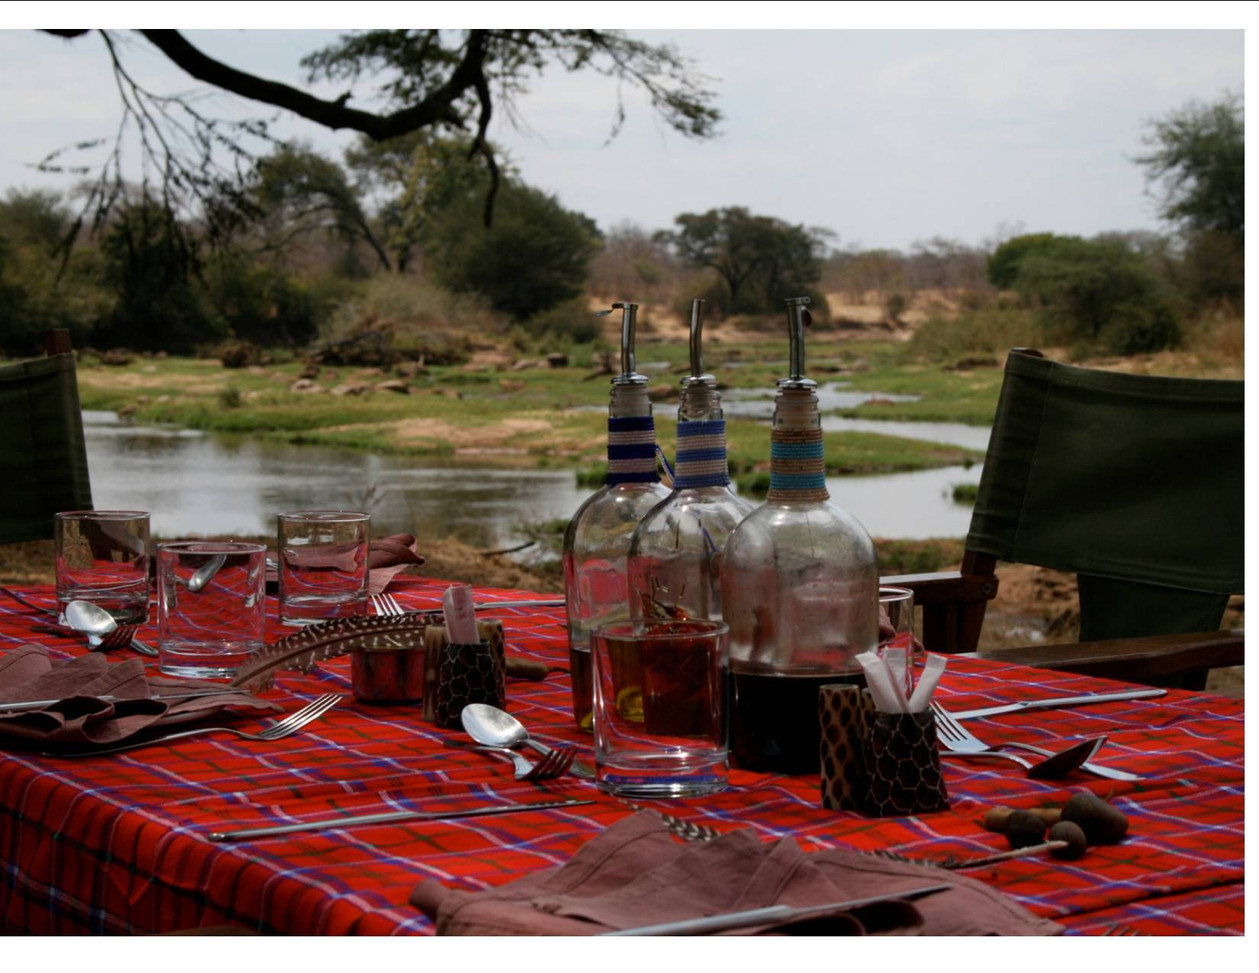 Bush Lunch at Jongomero, Ruaha